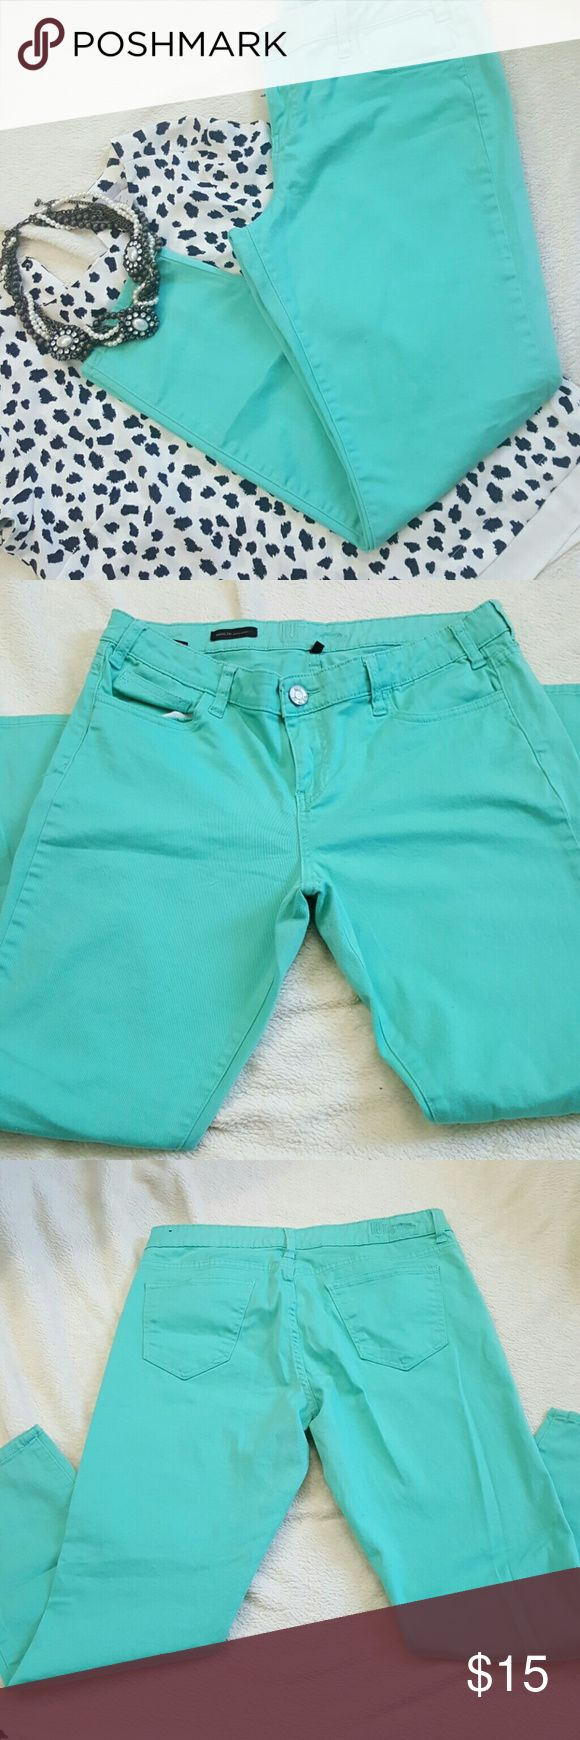 Kut from The Kloth | Mint Jeans 5 pocket jeans  Ankle Jeans  Skinny  Gently worn and unfortunately don't fit me any longer Such a fun color Kut from the Kloth Jeans Skinny